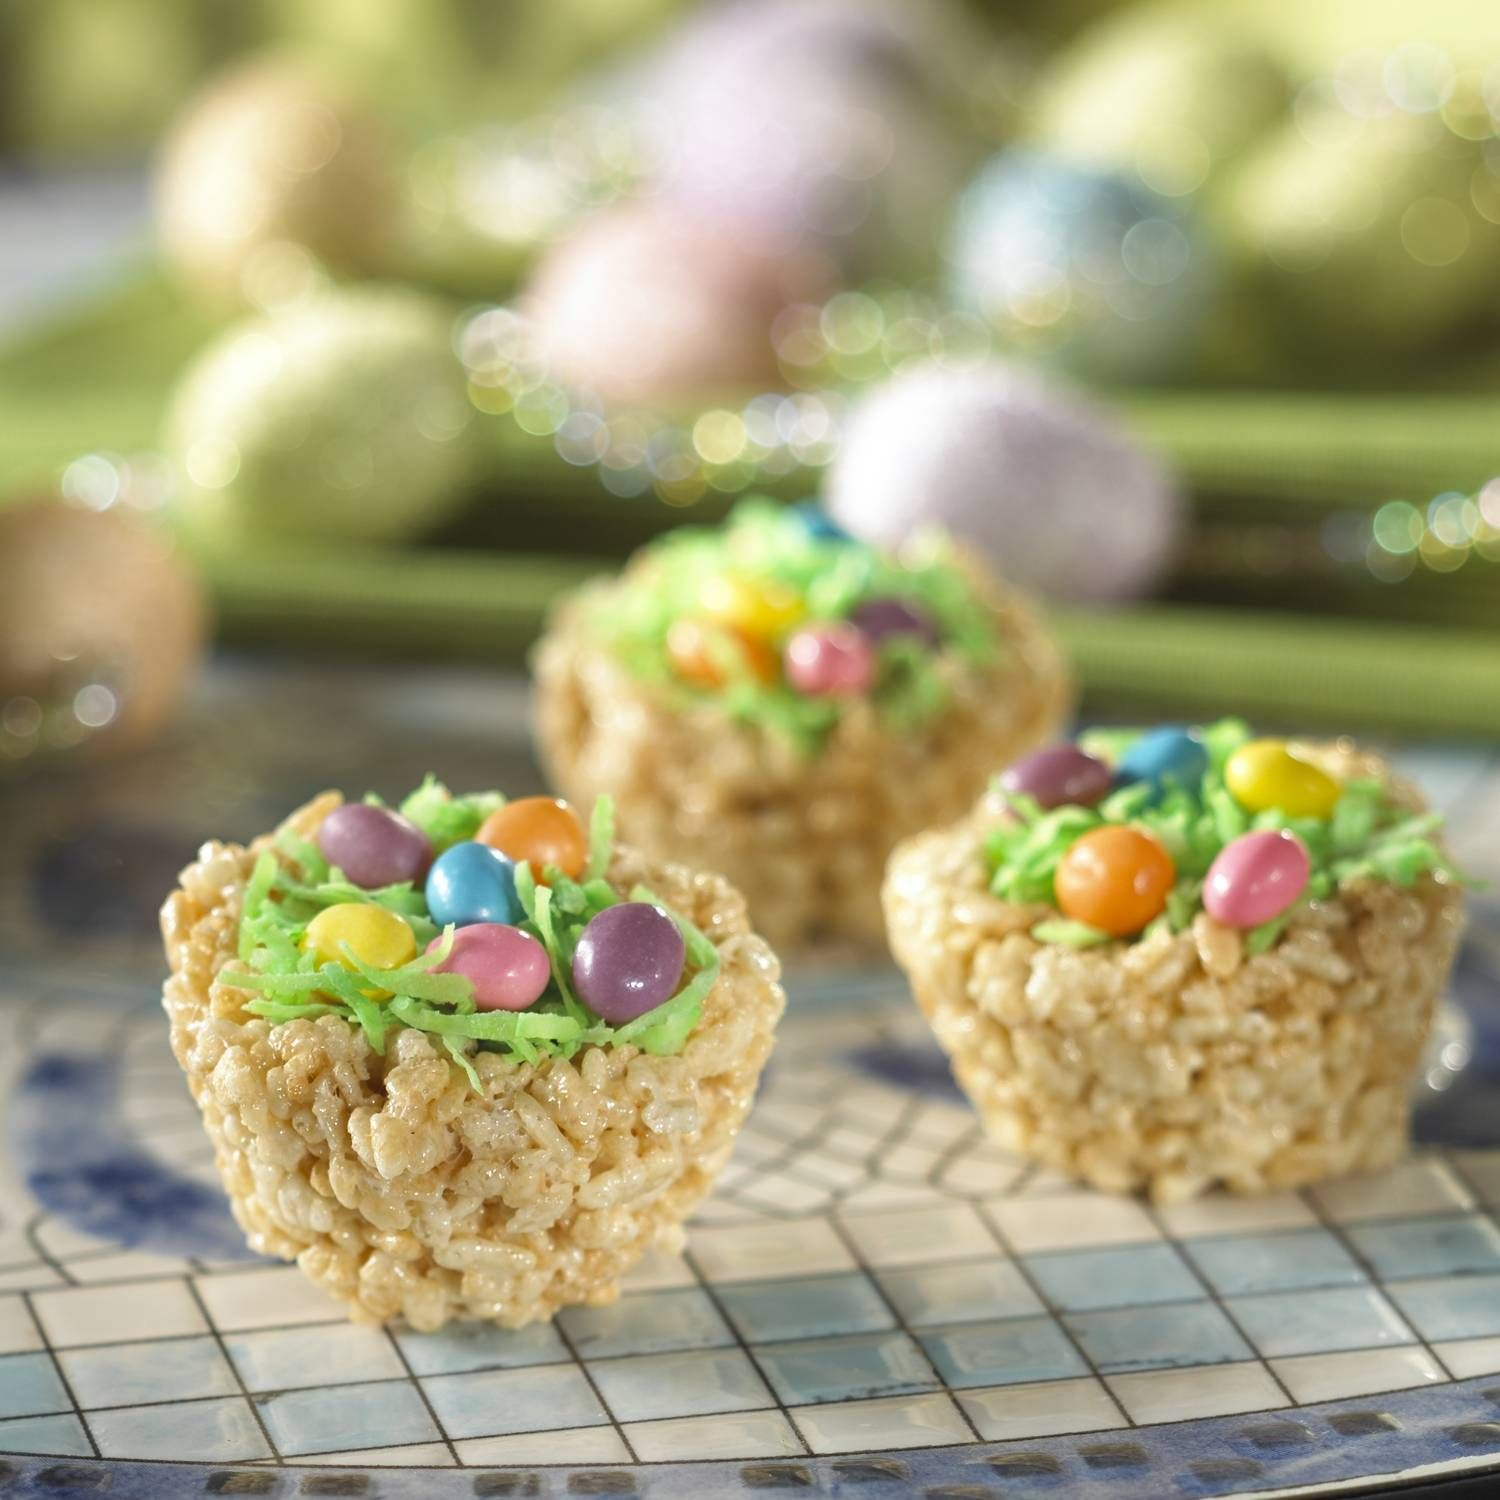 Definitely Making these yummy treats for my little girls